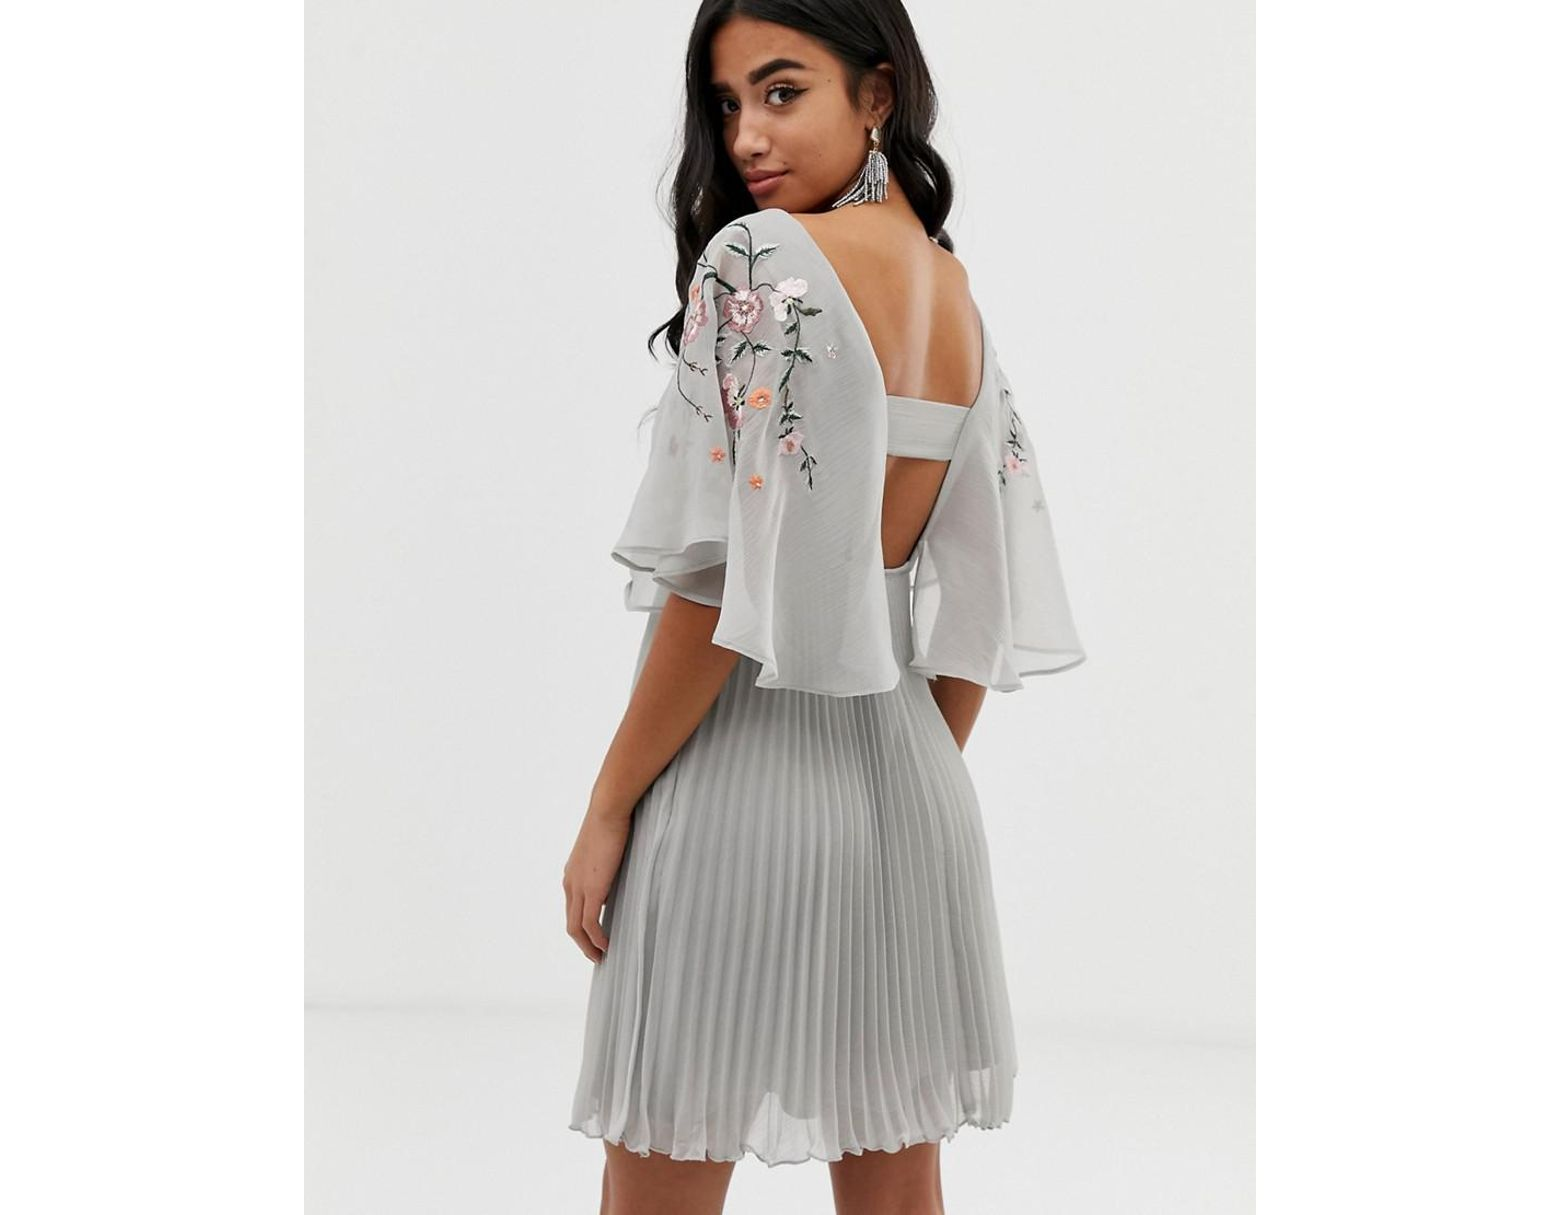 c8b91c0cf85882 ASOS Asos Design Petite Flutter Sleeve Mini Dress With Pleat Skirt In  Embroidery in Gray - Lyst